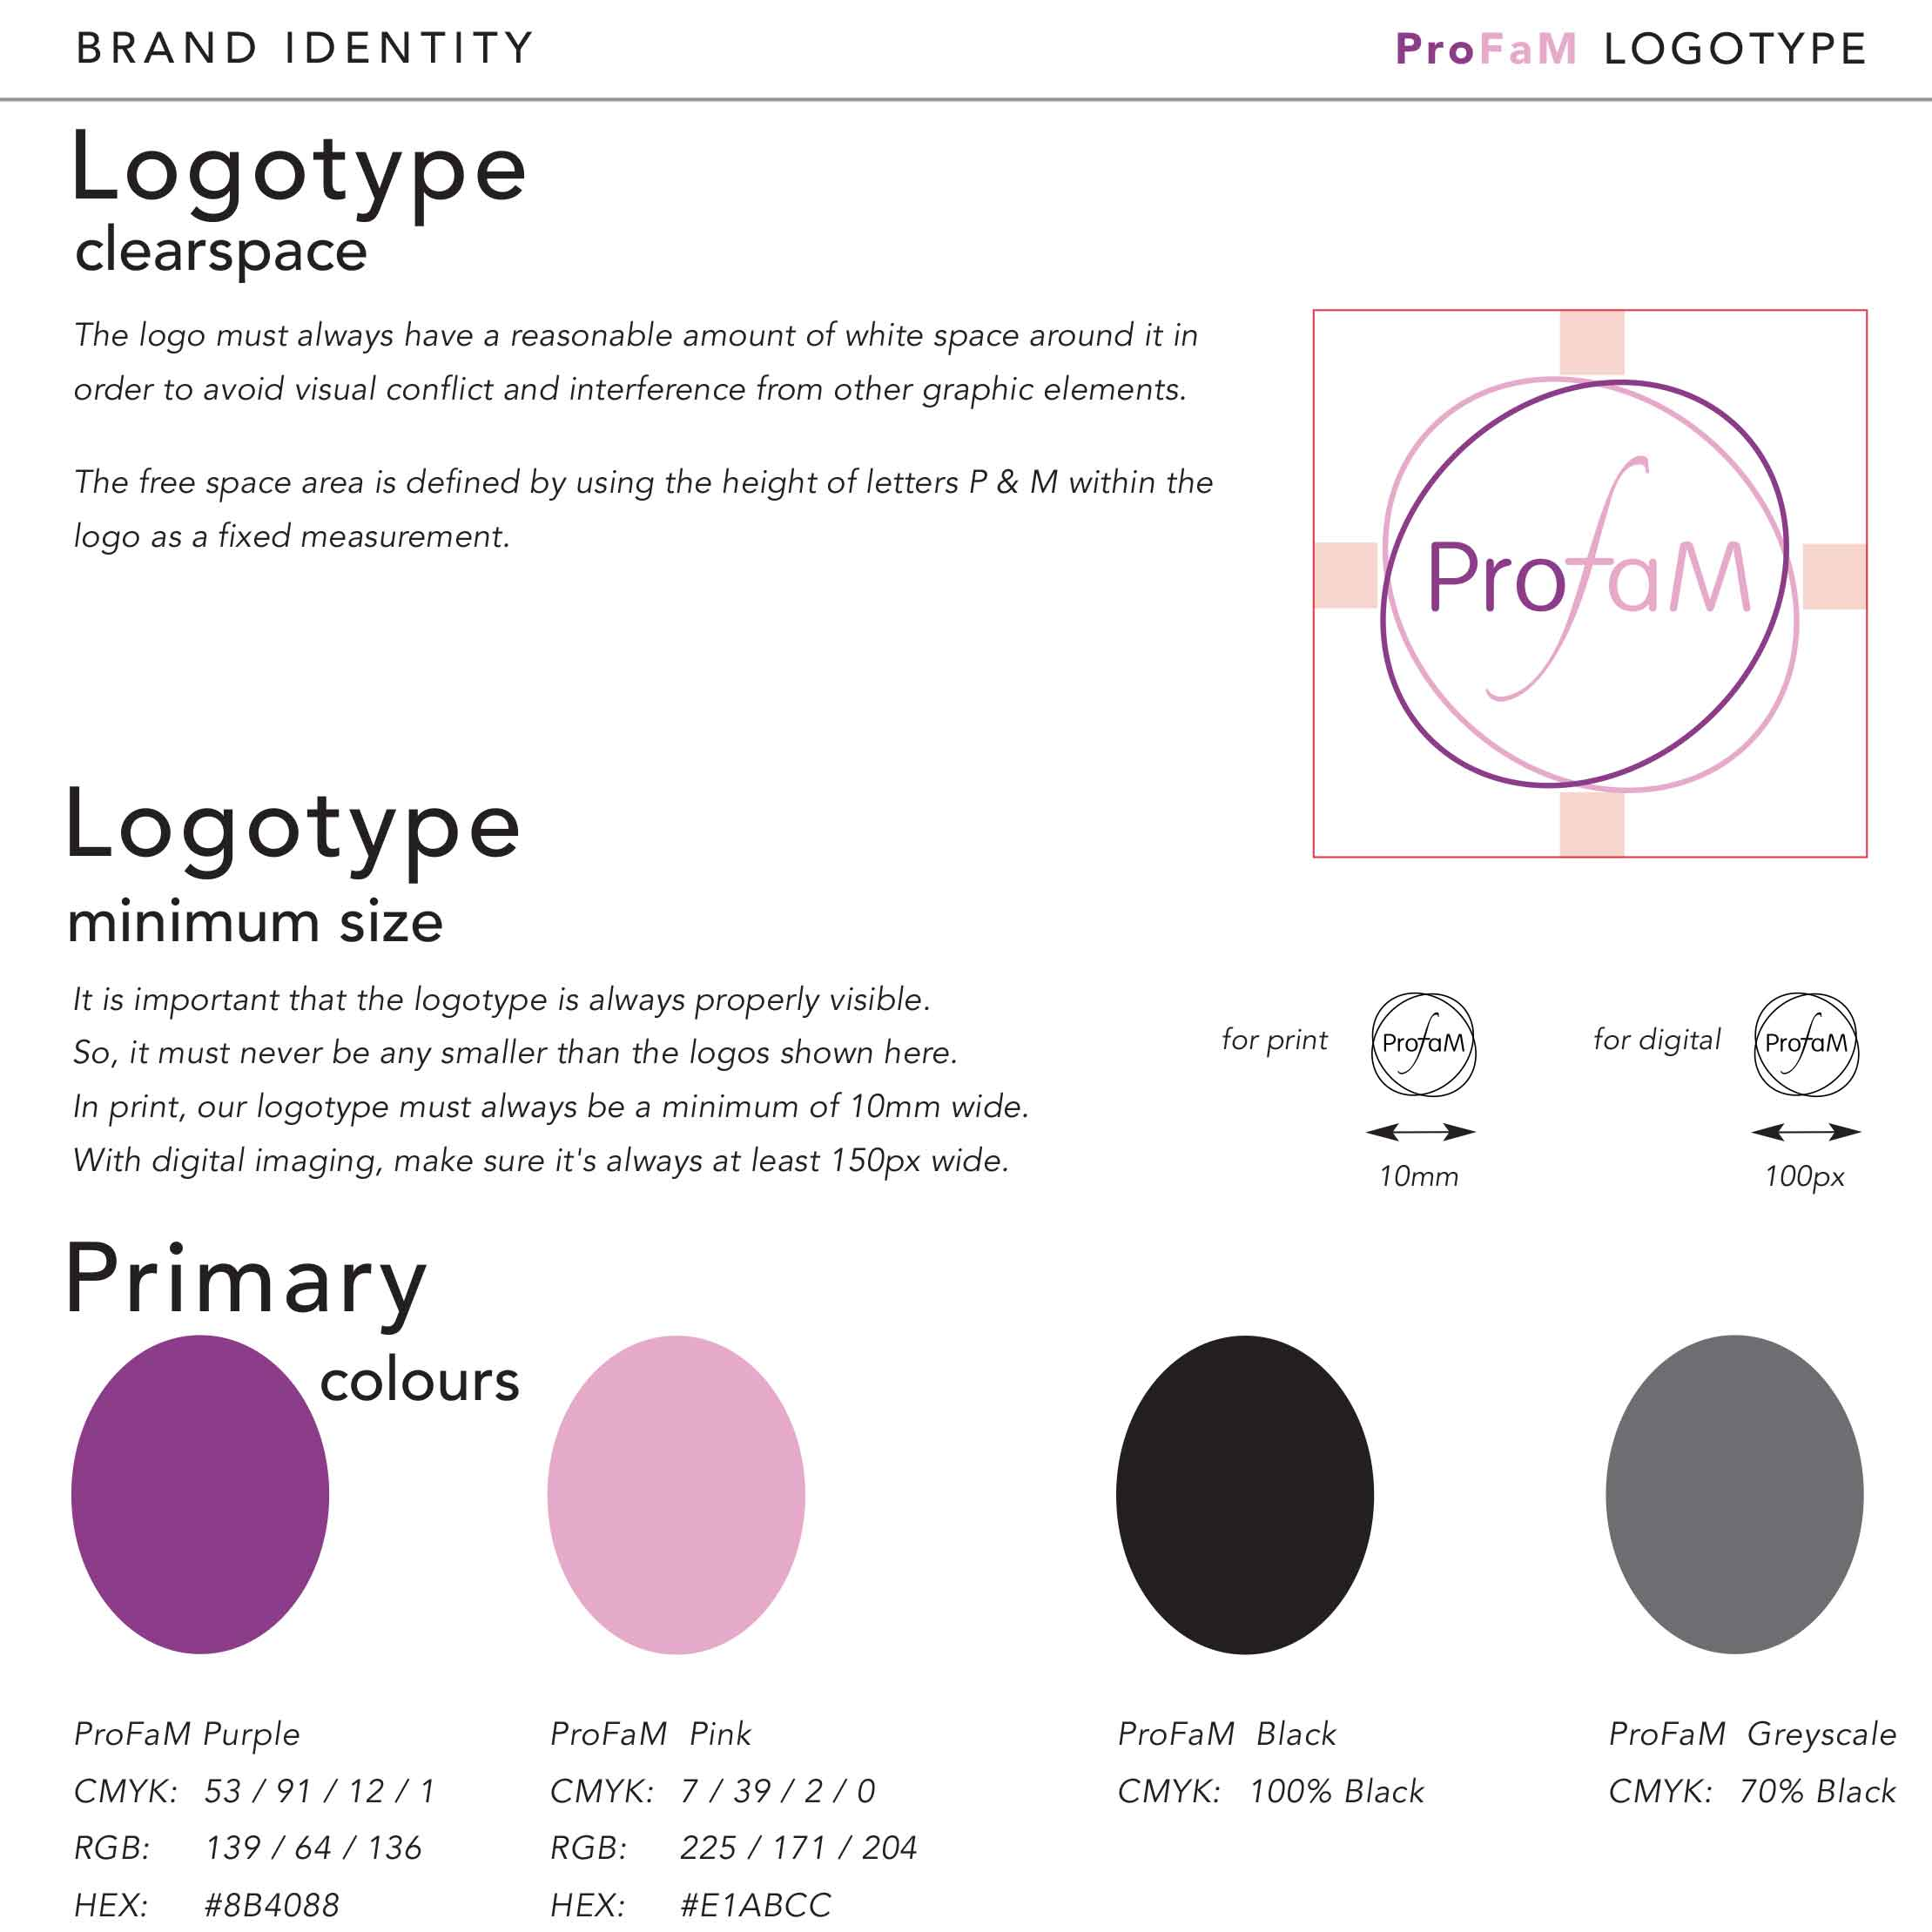 logo design, branding guideline colours produced by brightside